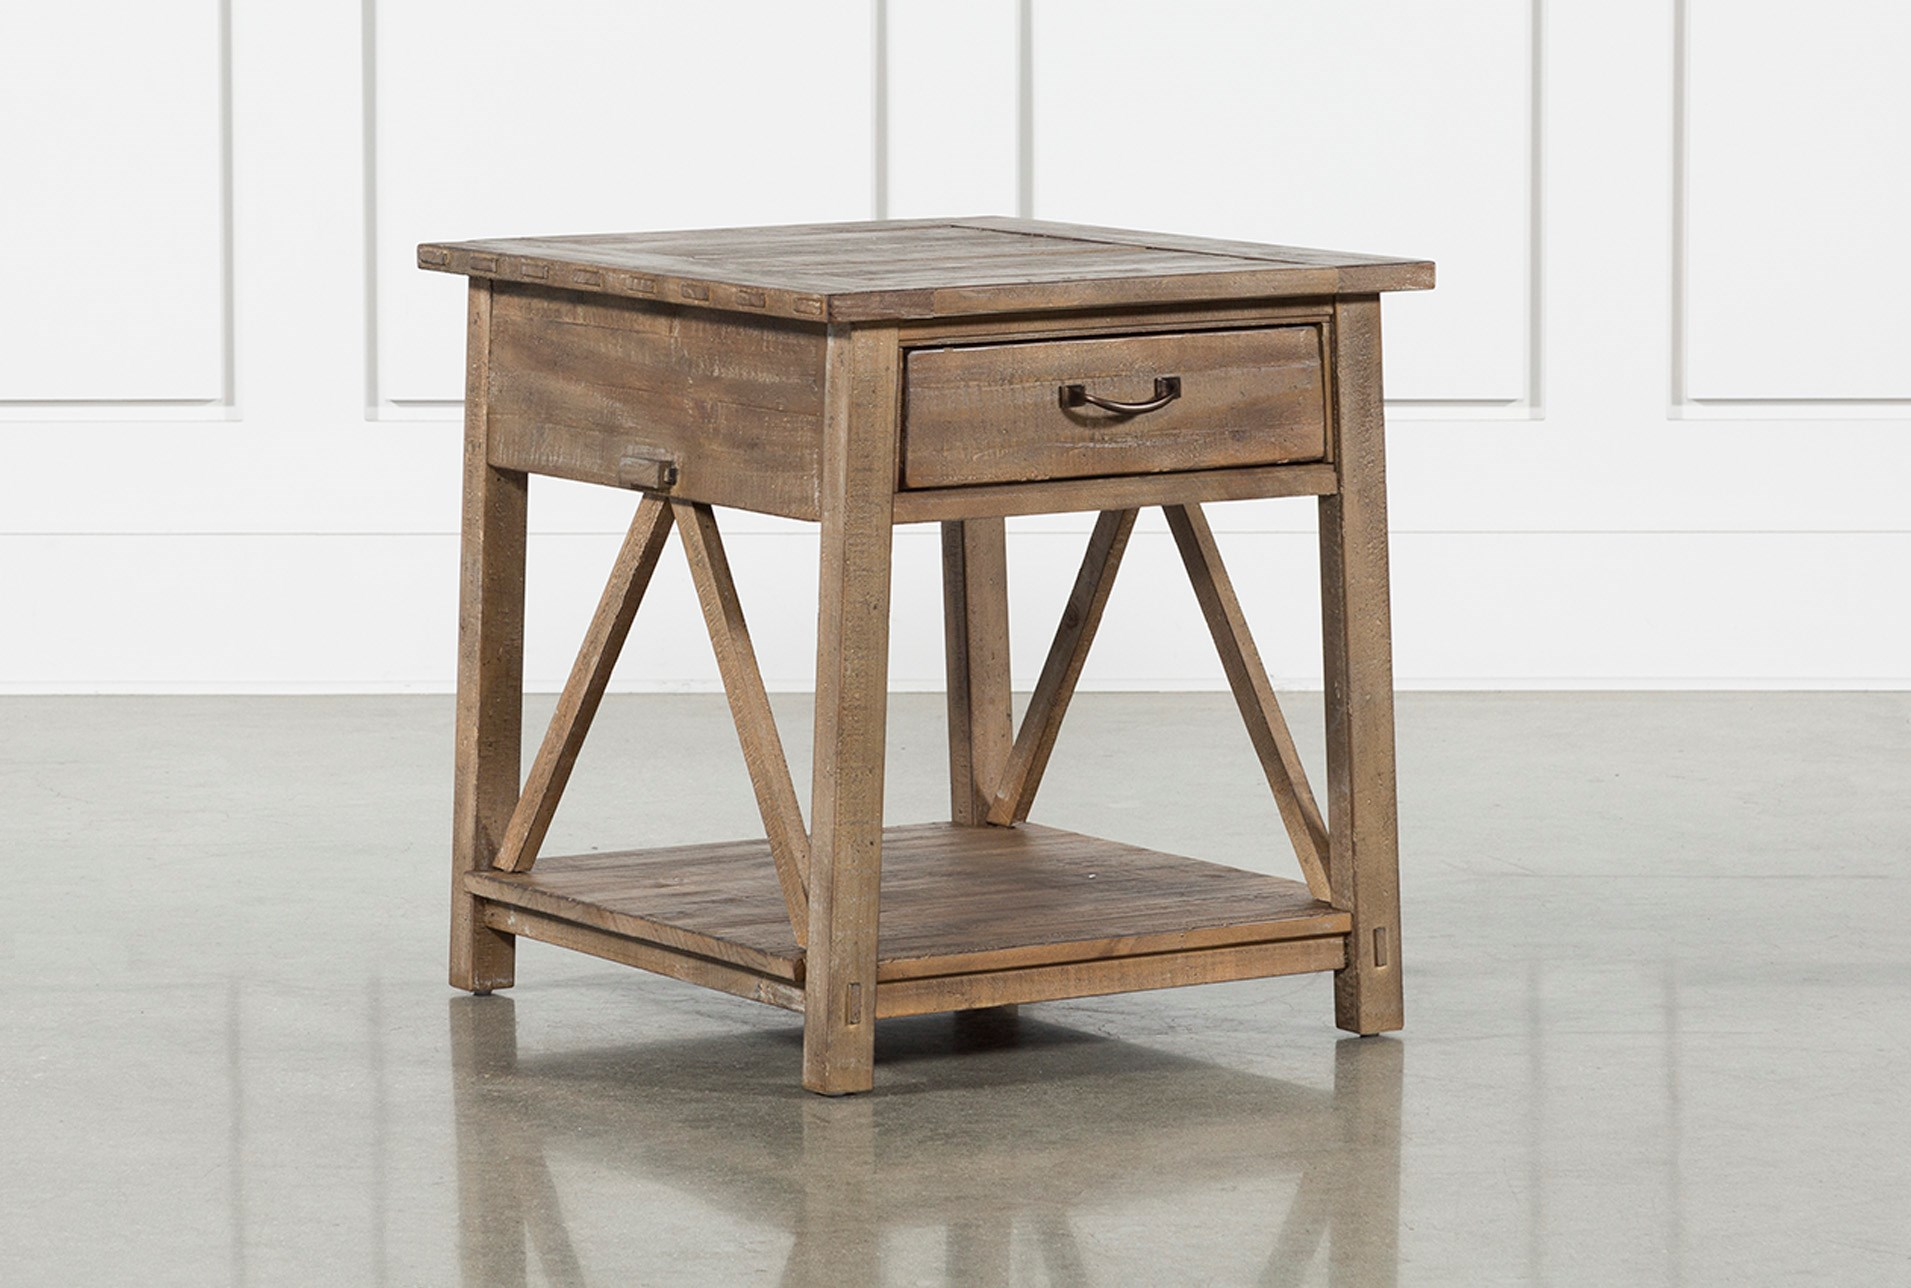 craftsman storage end table living spaces brown wood tables furniture qty has been successfully your cart nest kmart wolfe creek amphitheater small with wheels pipe stand desk